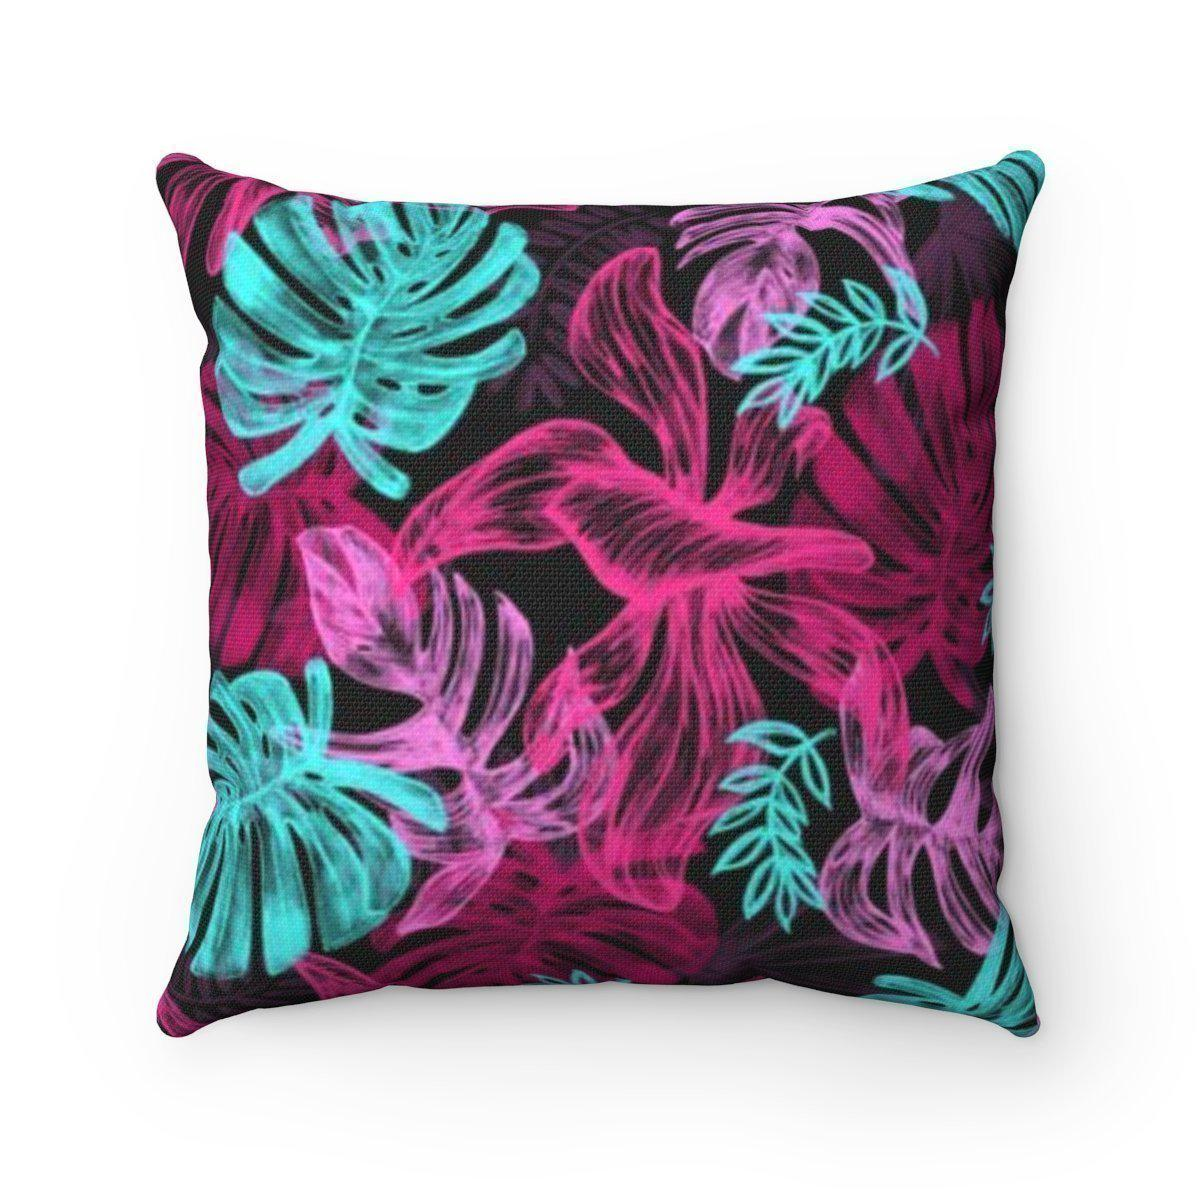 Modern tropical leaves decorative cushion cover-Home Decor - Decorative Accents - Pillows & Throws - Decorative Pillows-Maison d'Elite-14x14-Très Elite